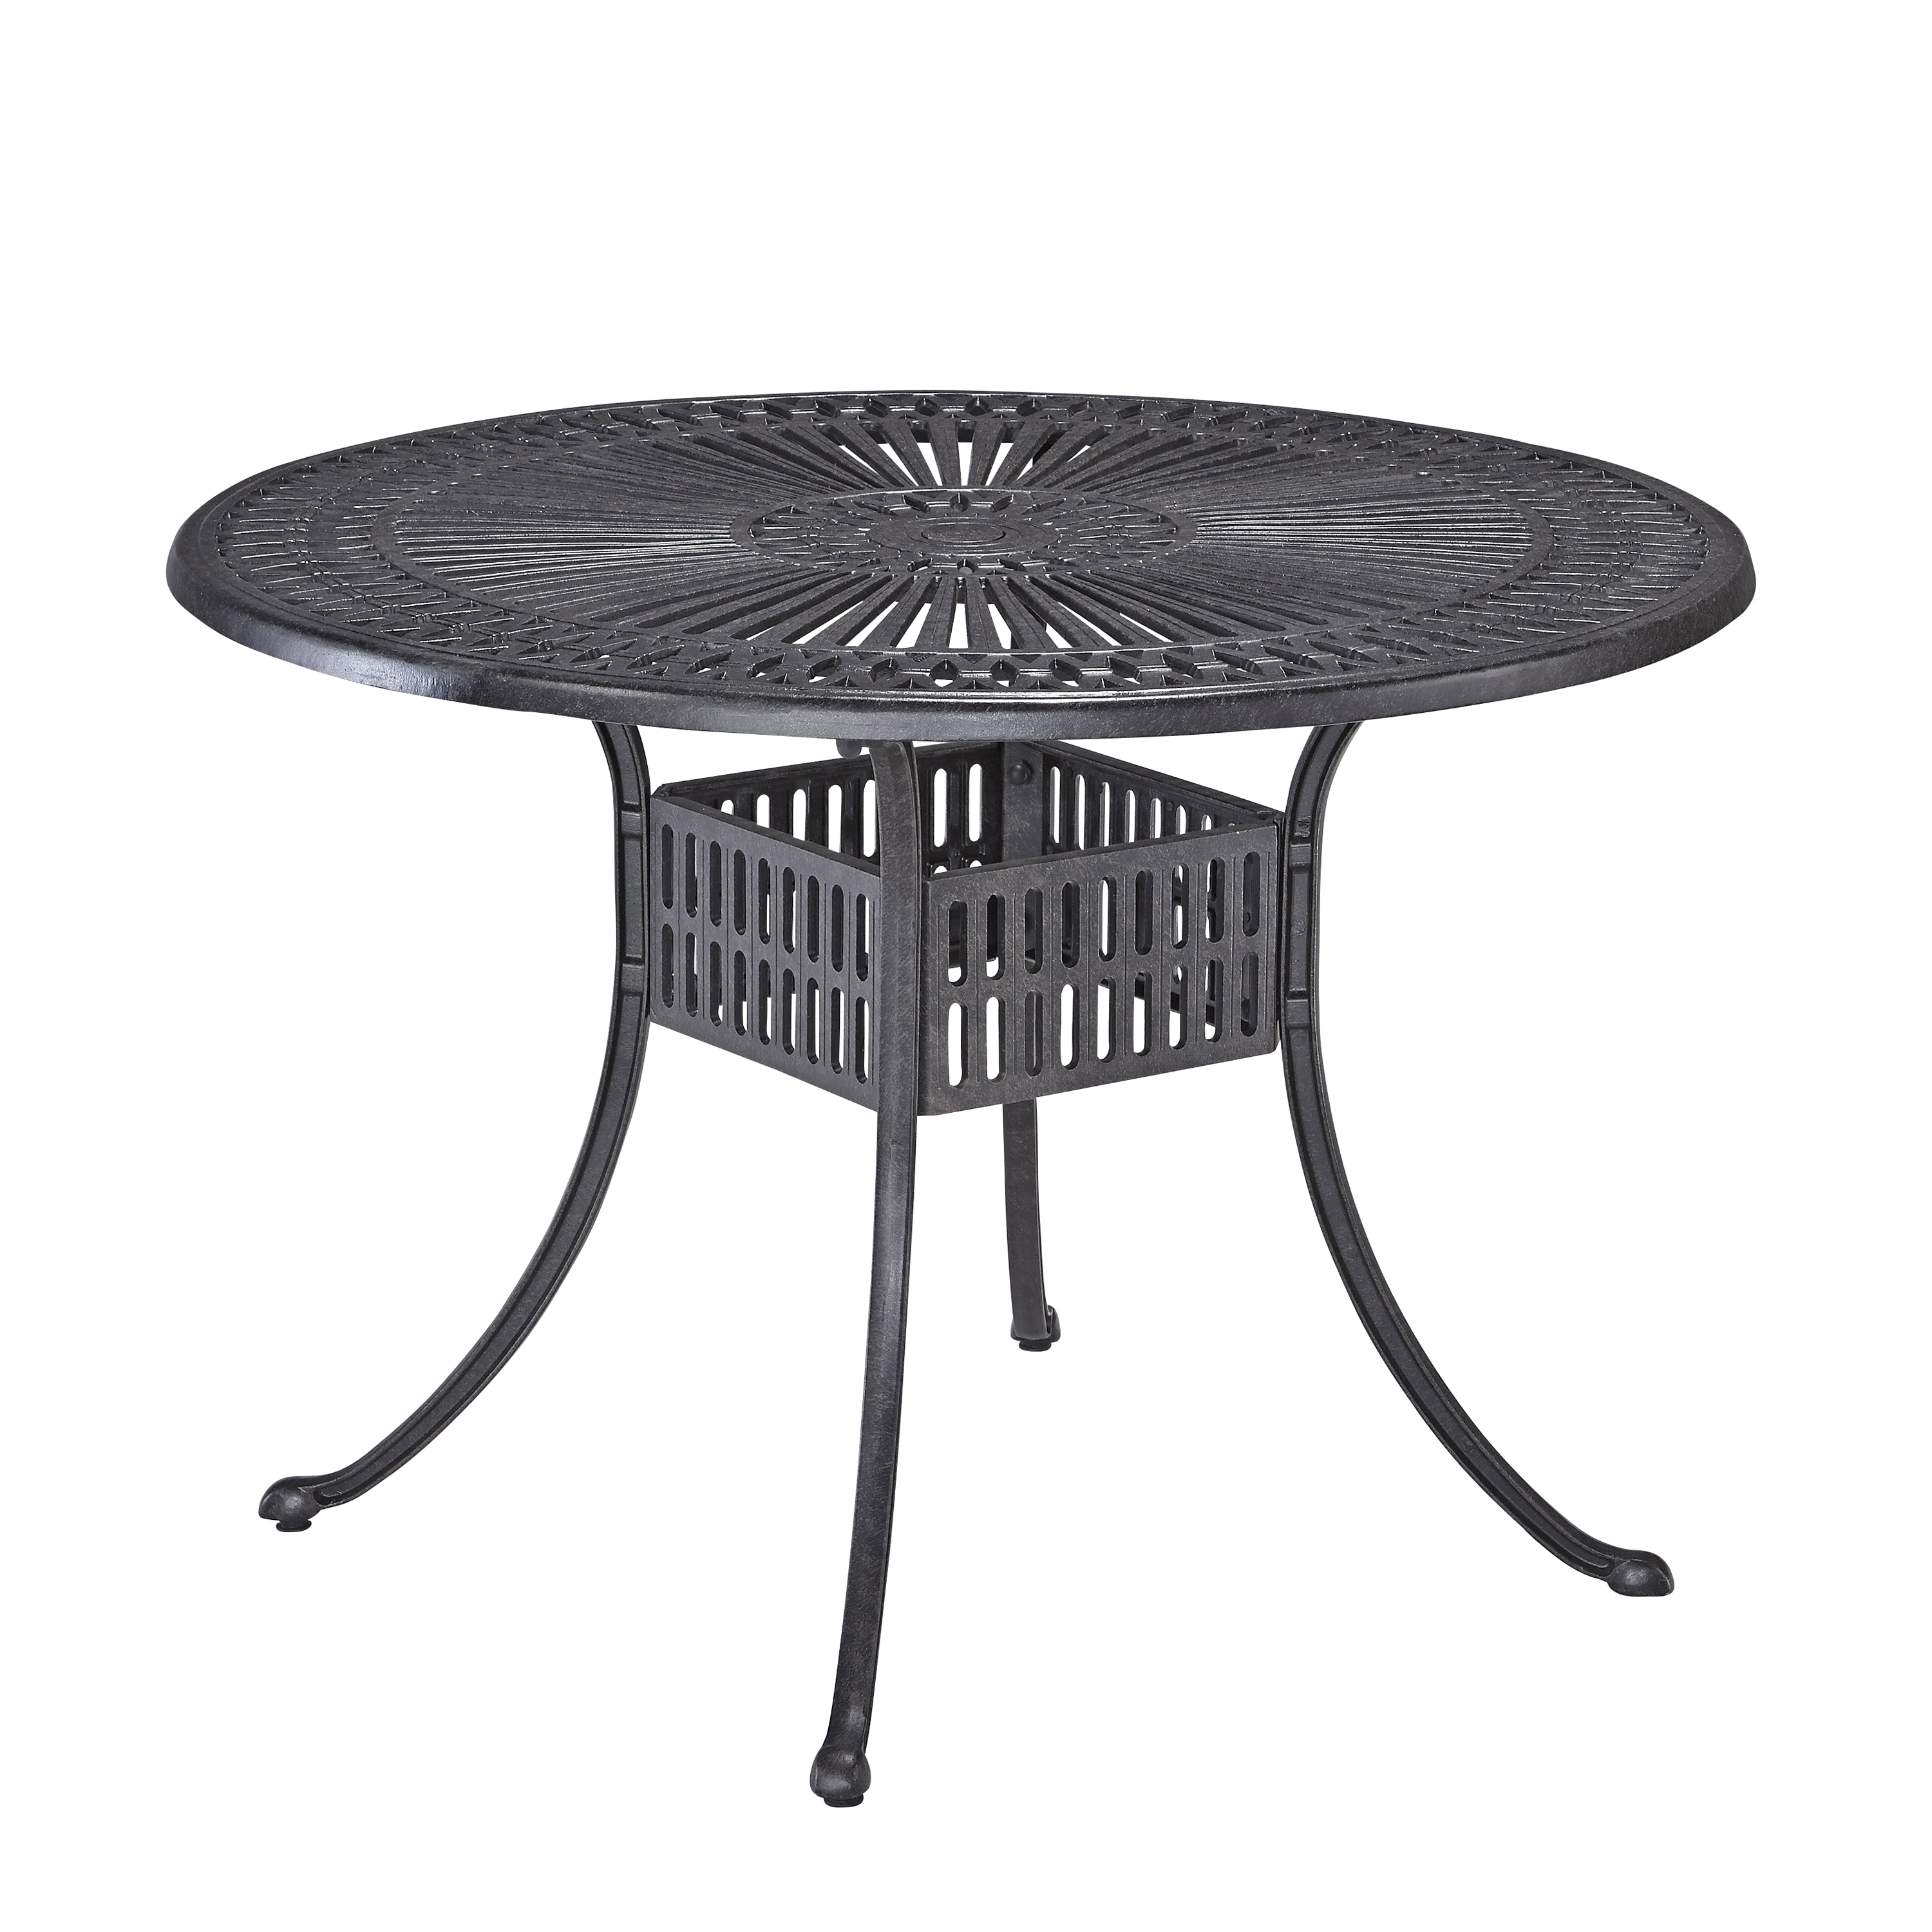 42 Inch Round Outdoor Dining Table